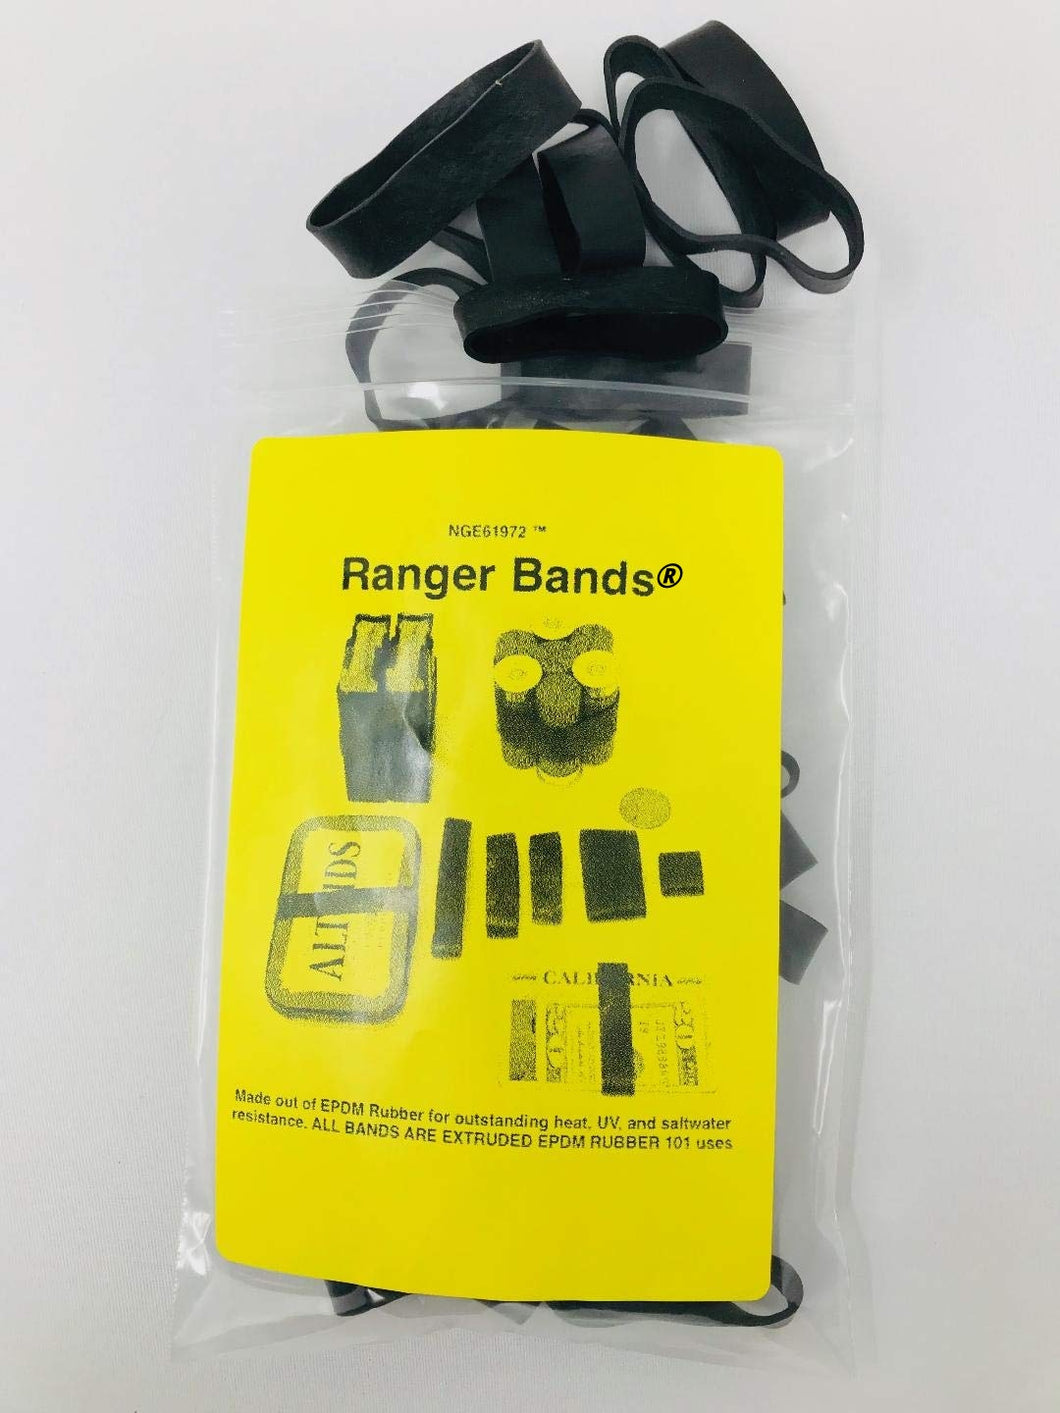 Ranger Bands® 60 Mixed Made From EPDM Rubber Survival & Strapping Gear  USA  NGE61972 ™